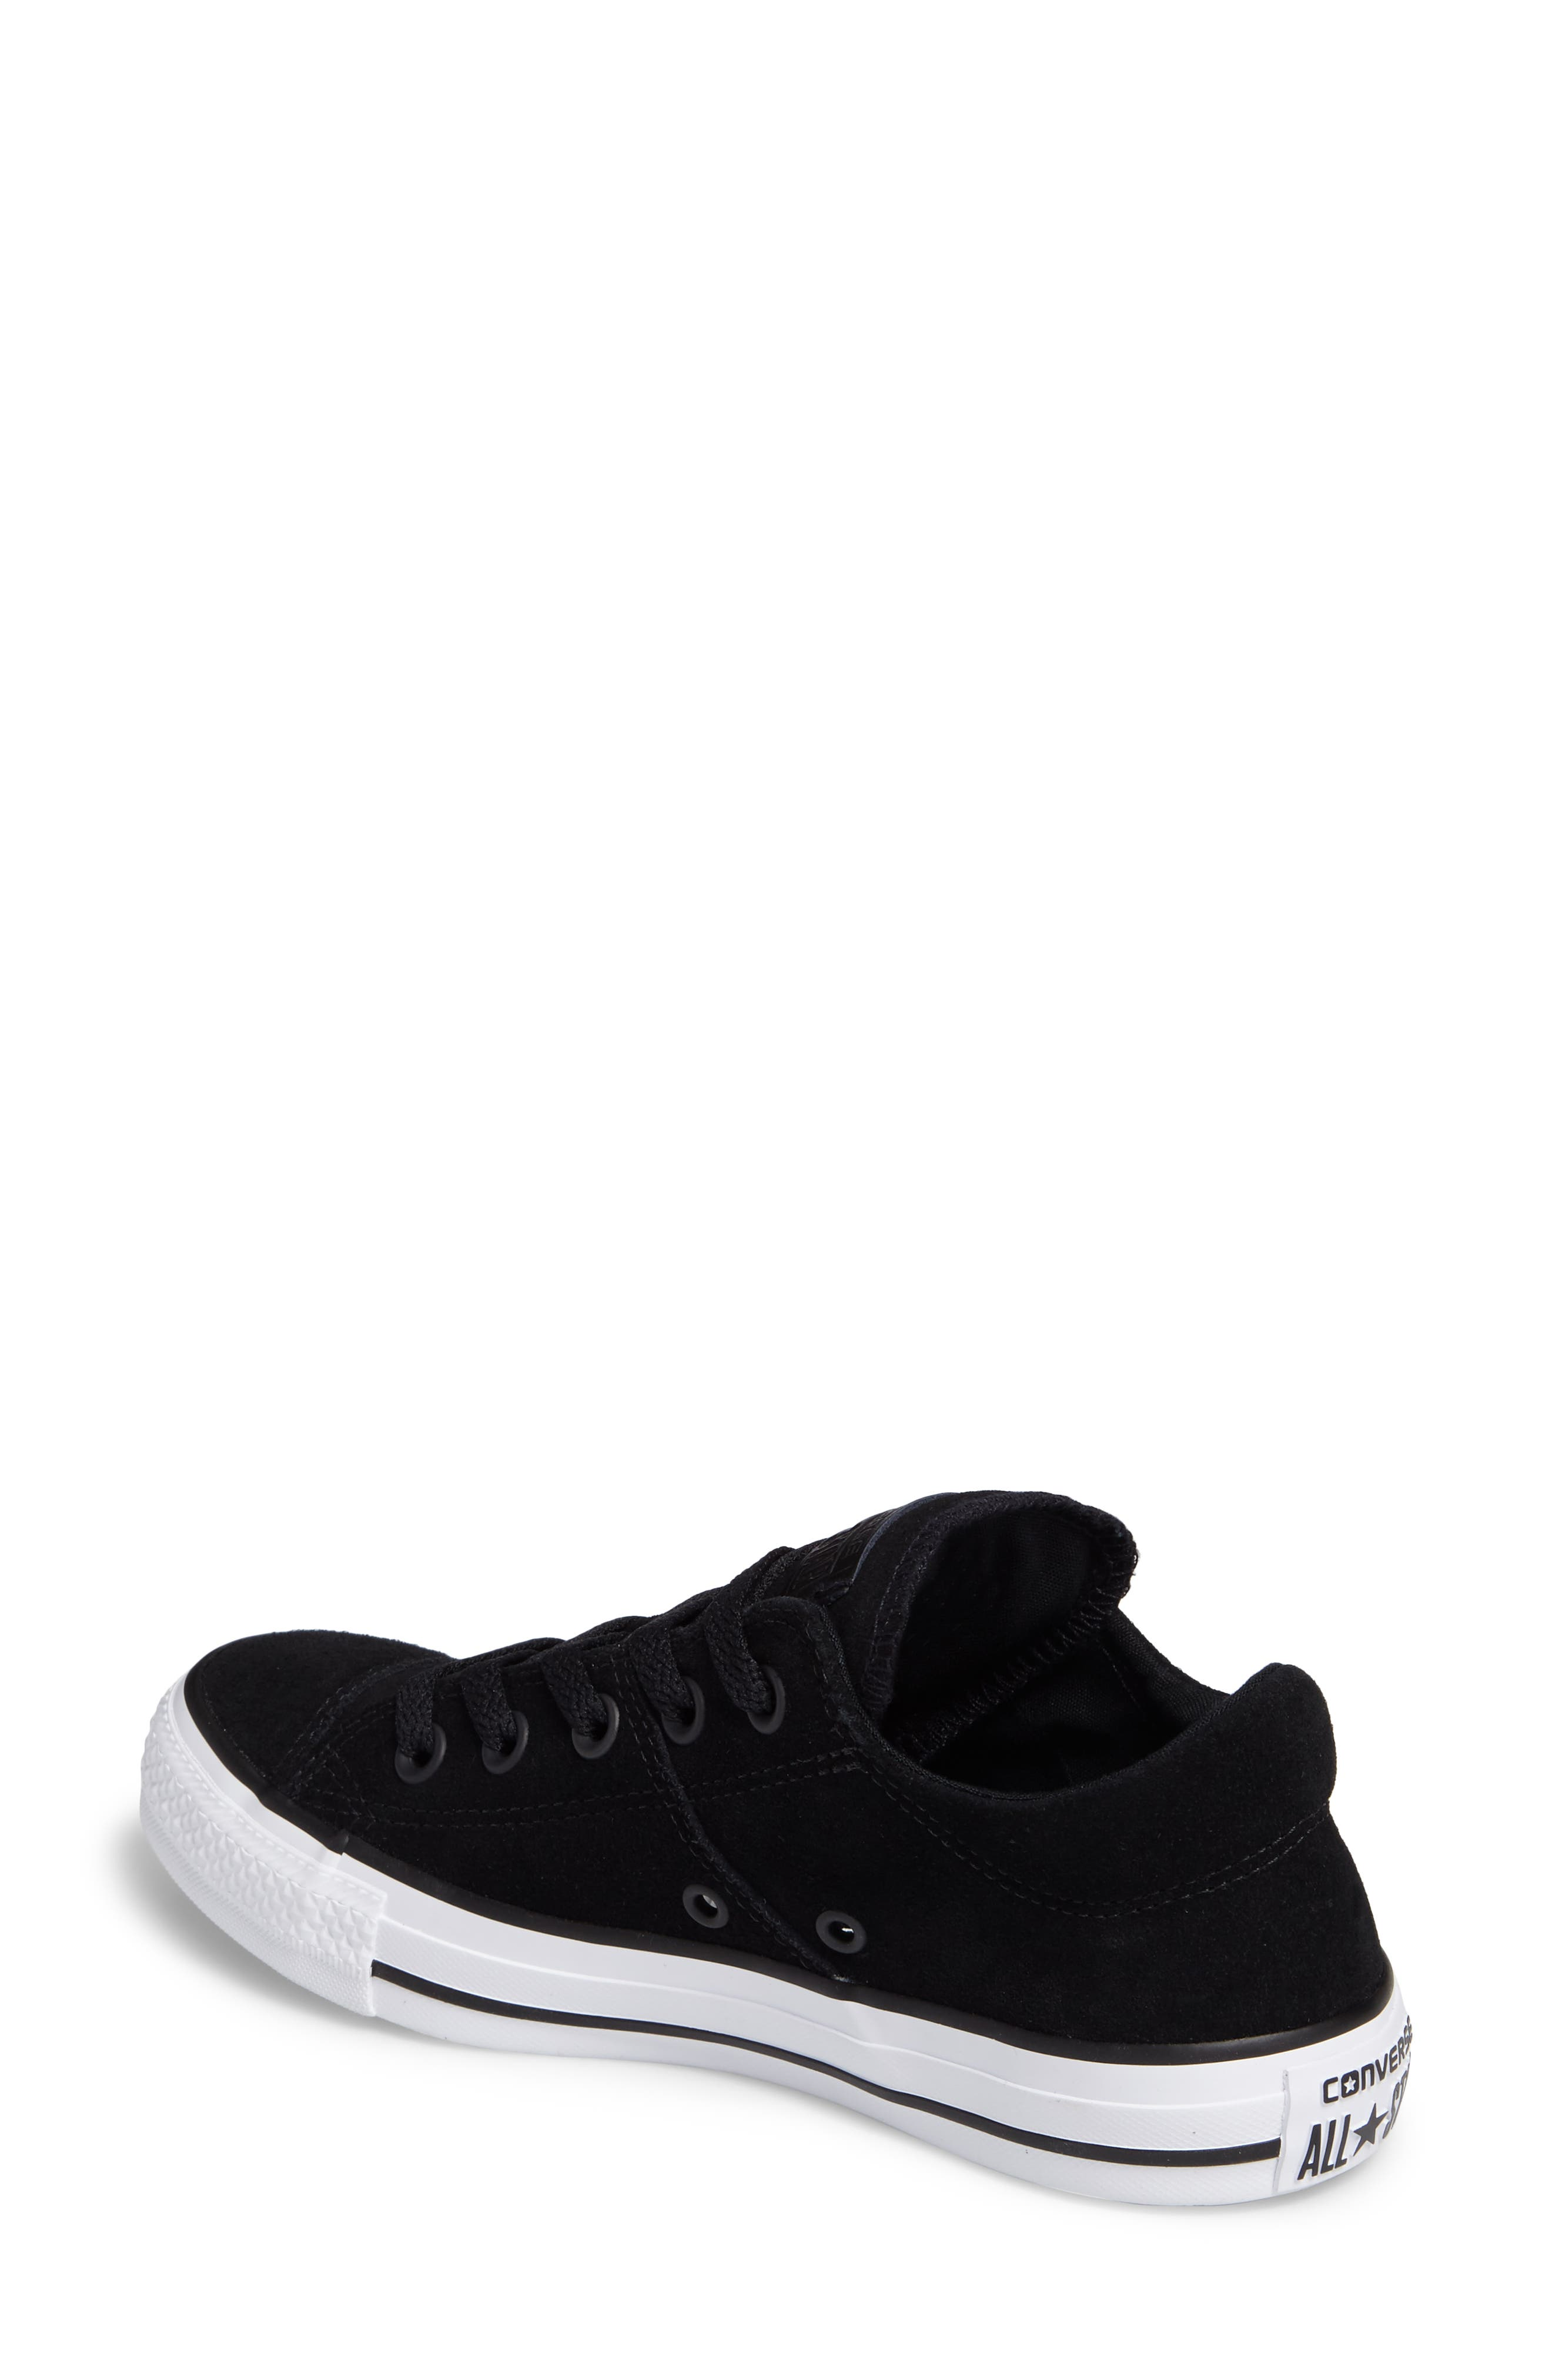 Alternate Image 2  - Converse Chuck Taylor® All Star® Madison Low Top Sneaker (Women)